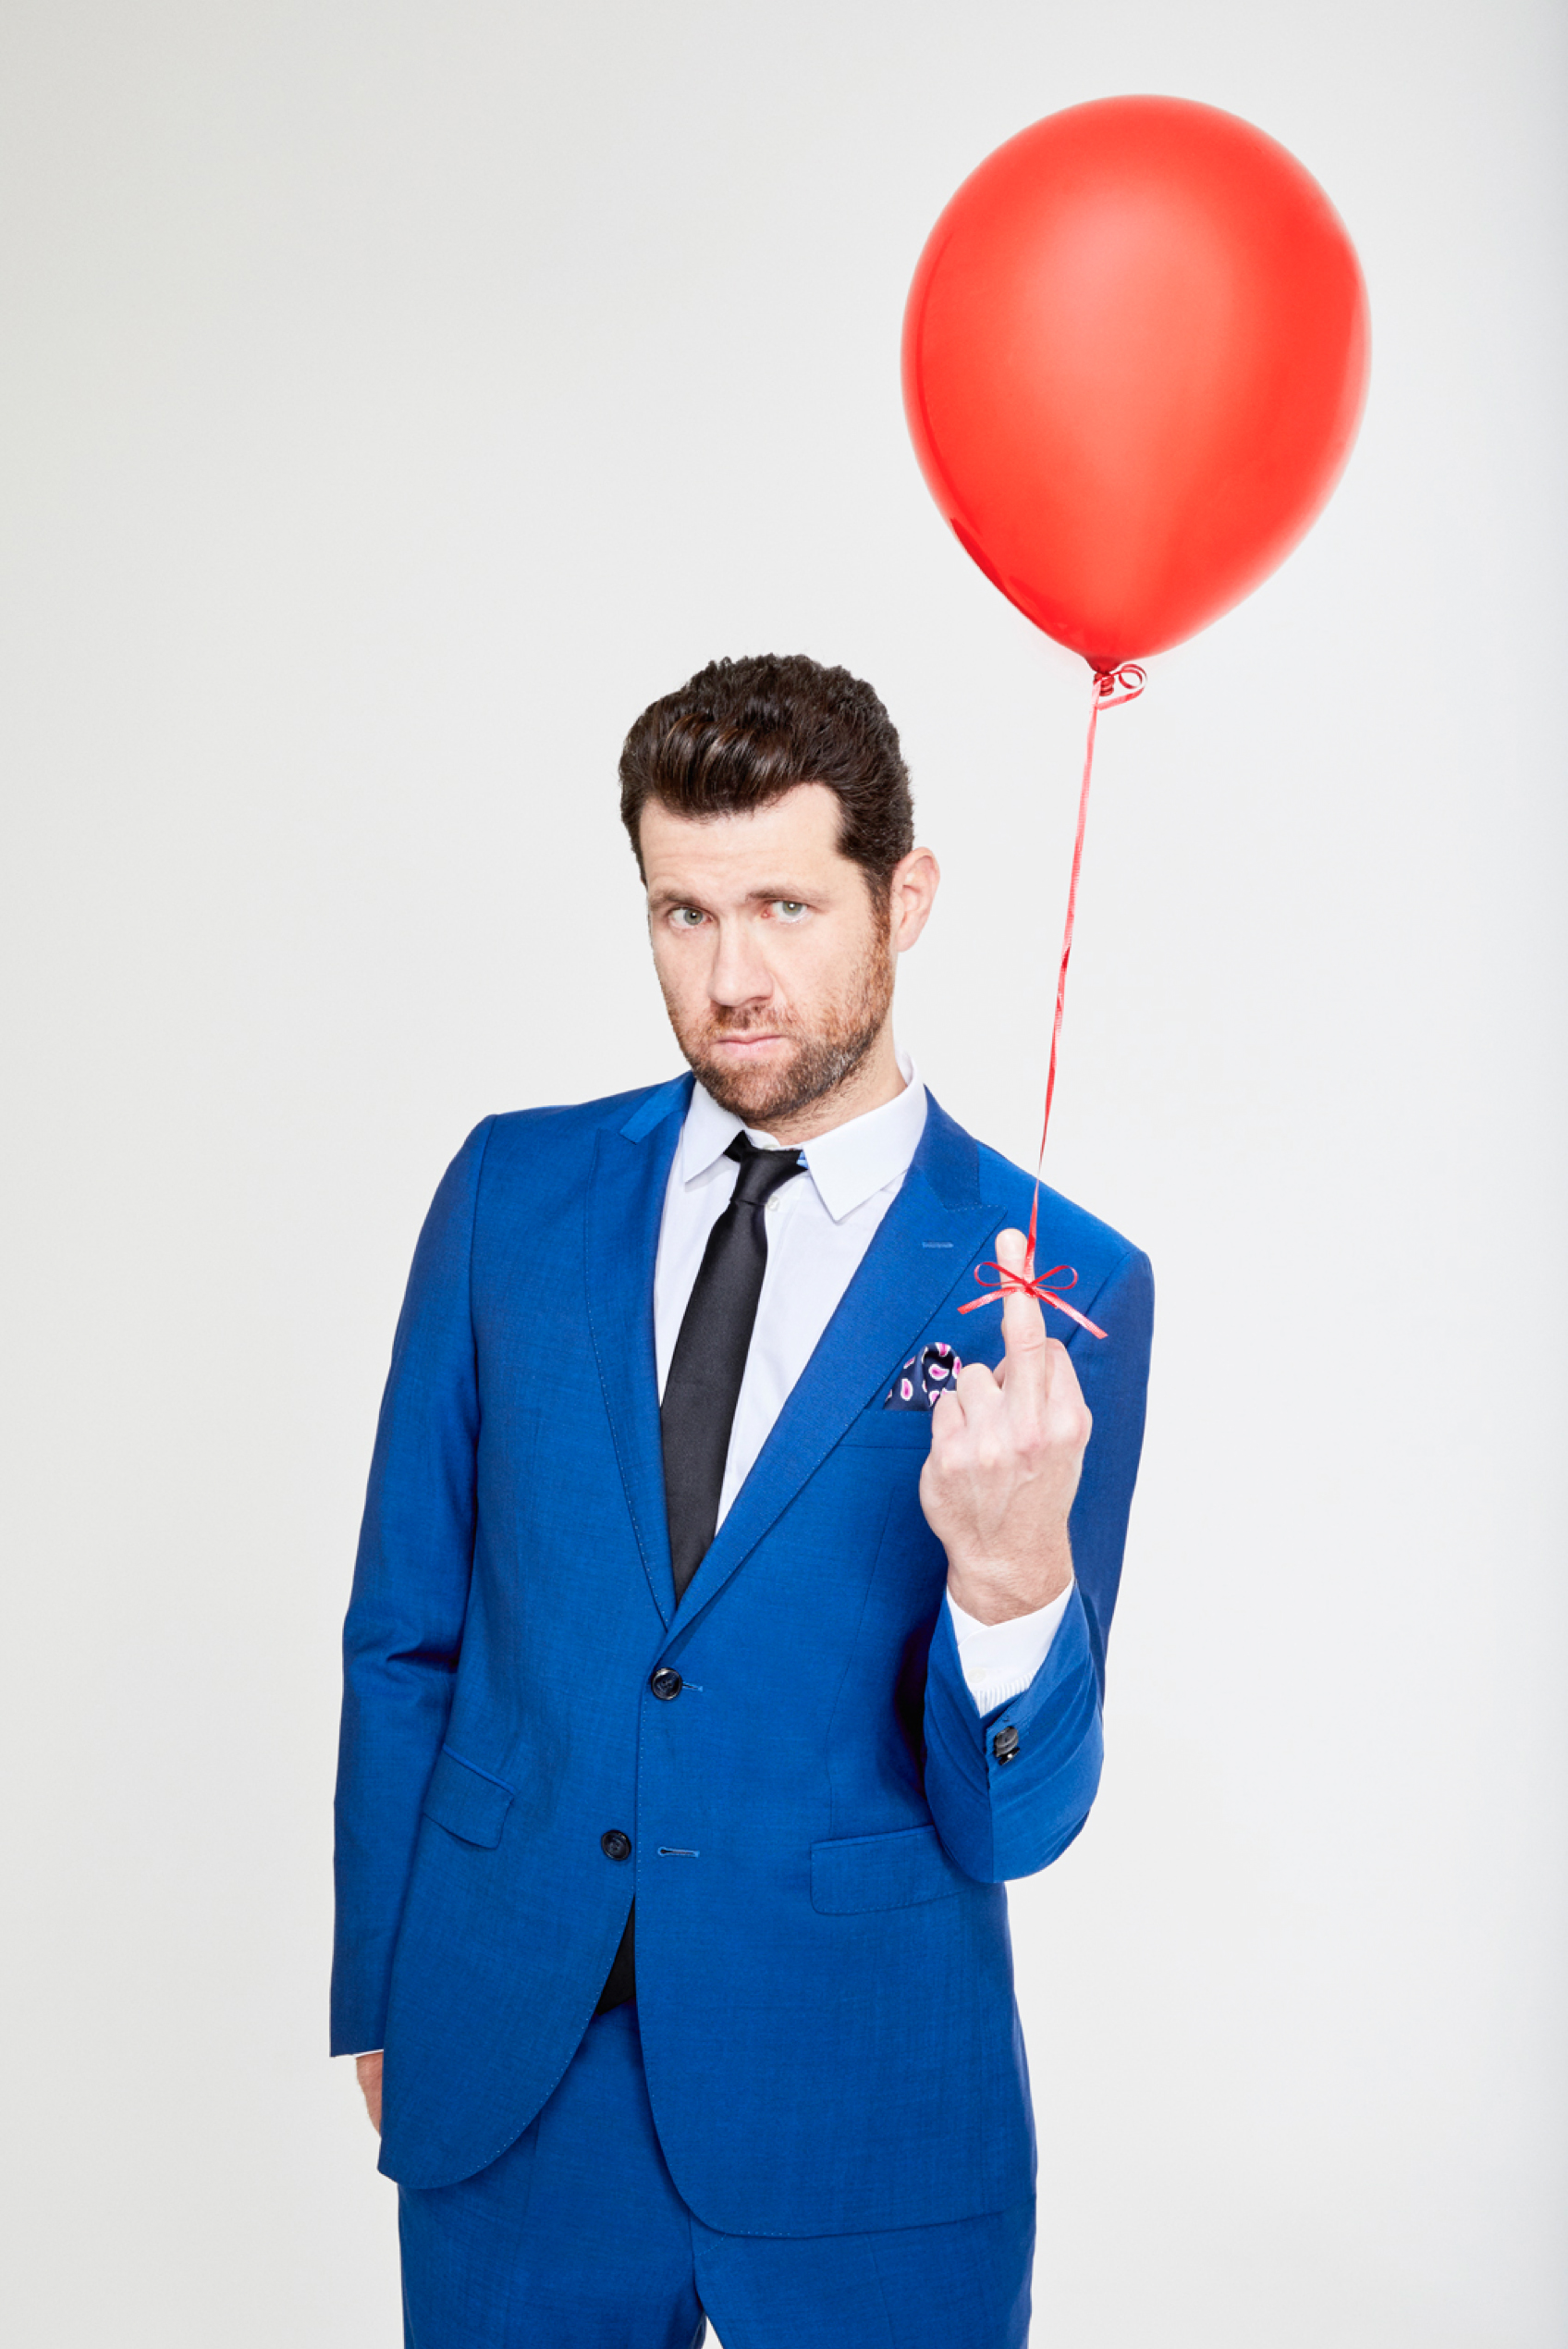 Billy Eichner by Amanda Friedman for TimeOutNY1.jpg